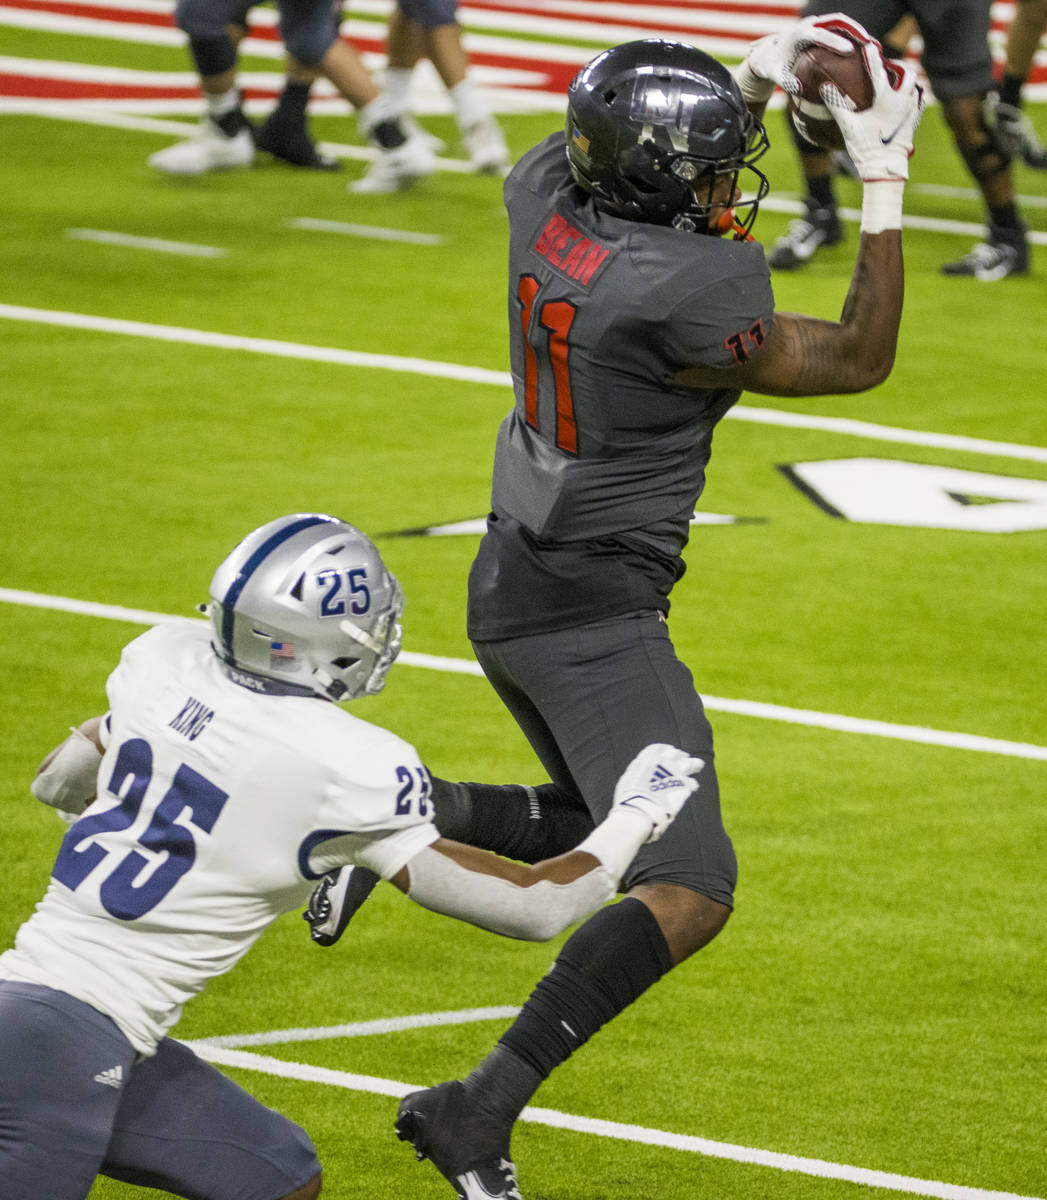 UNLV Rebels tight end Noah Bean (11, top) secures a pass above Nevada Wolf Pack defensive back ...